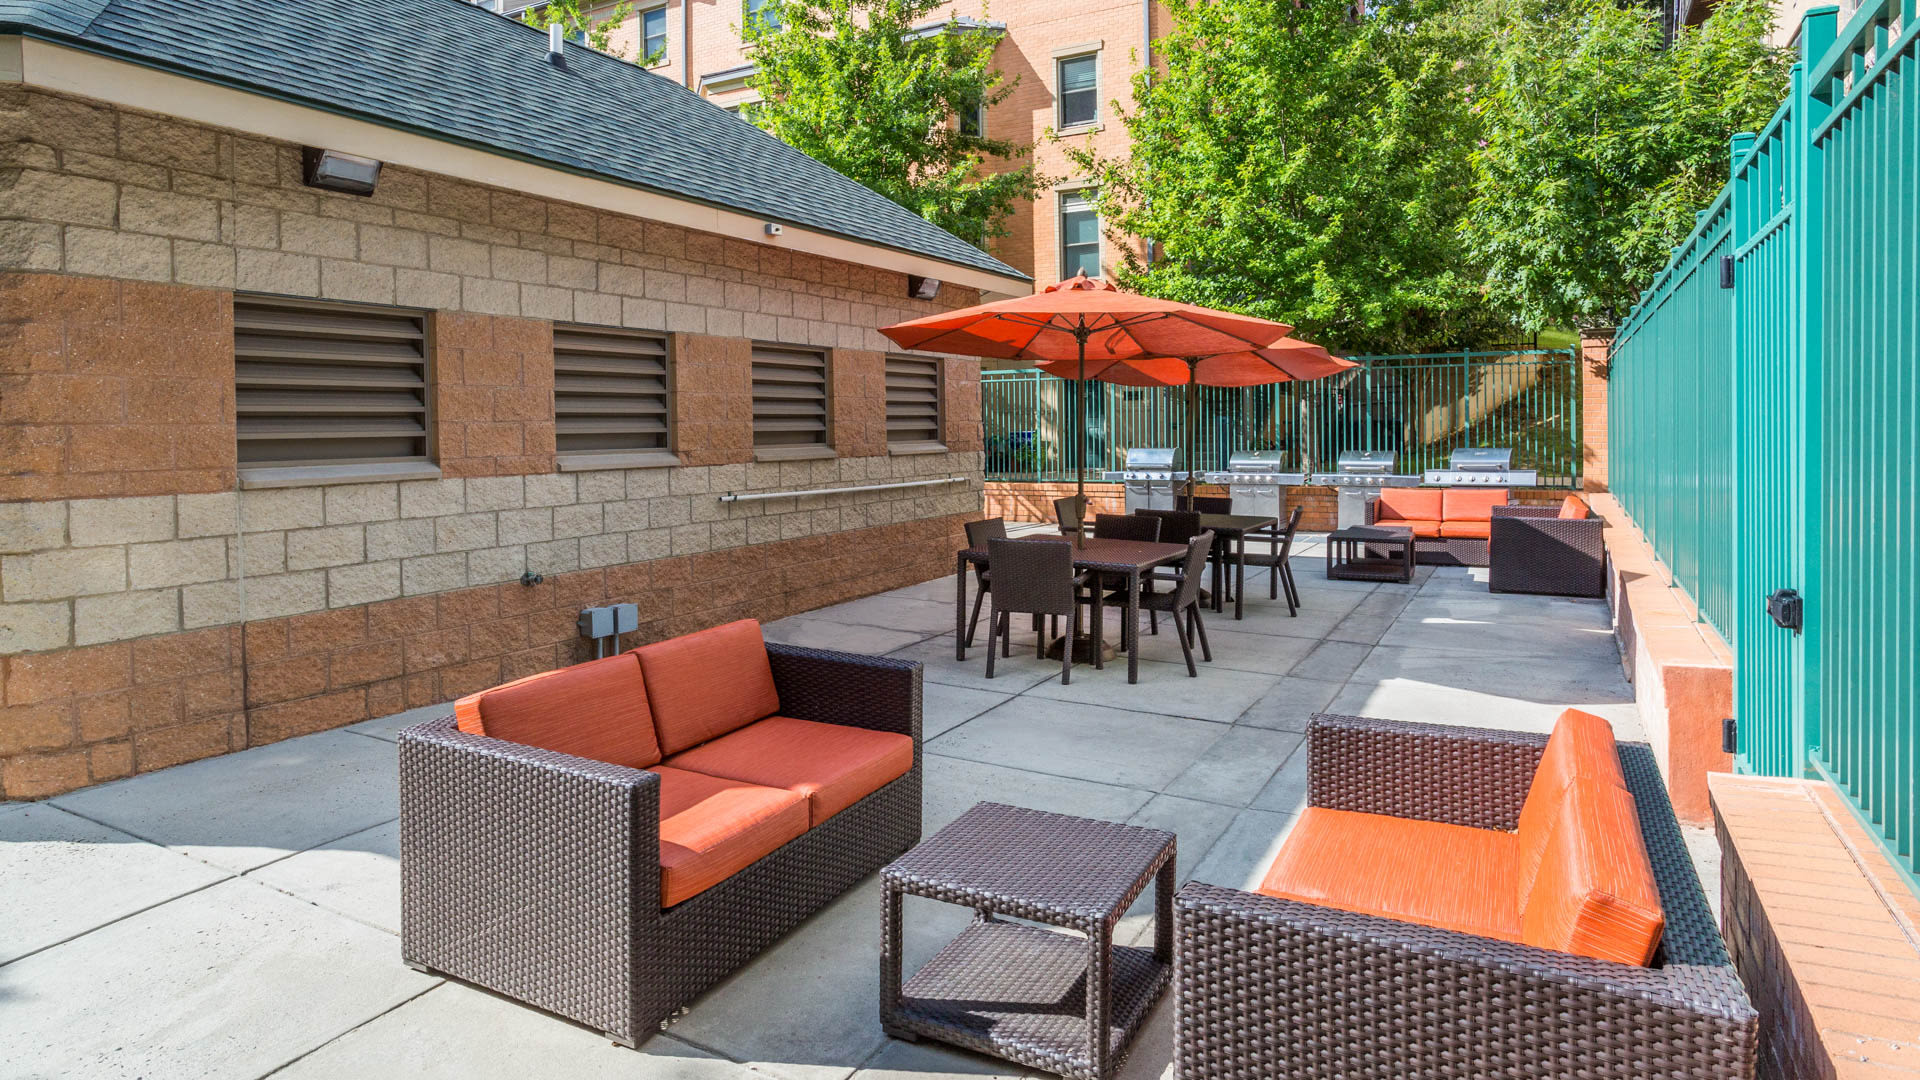 Vista on Courthouse Apartments - Patio Lounge and Grilling Area